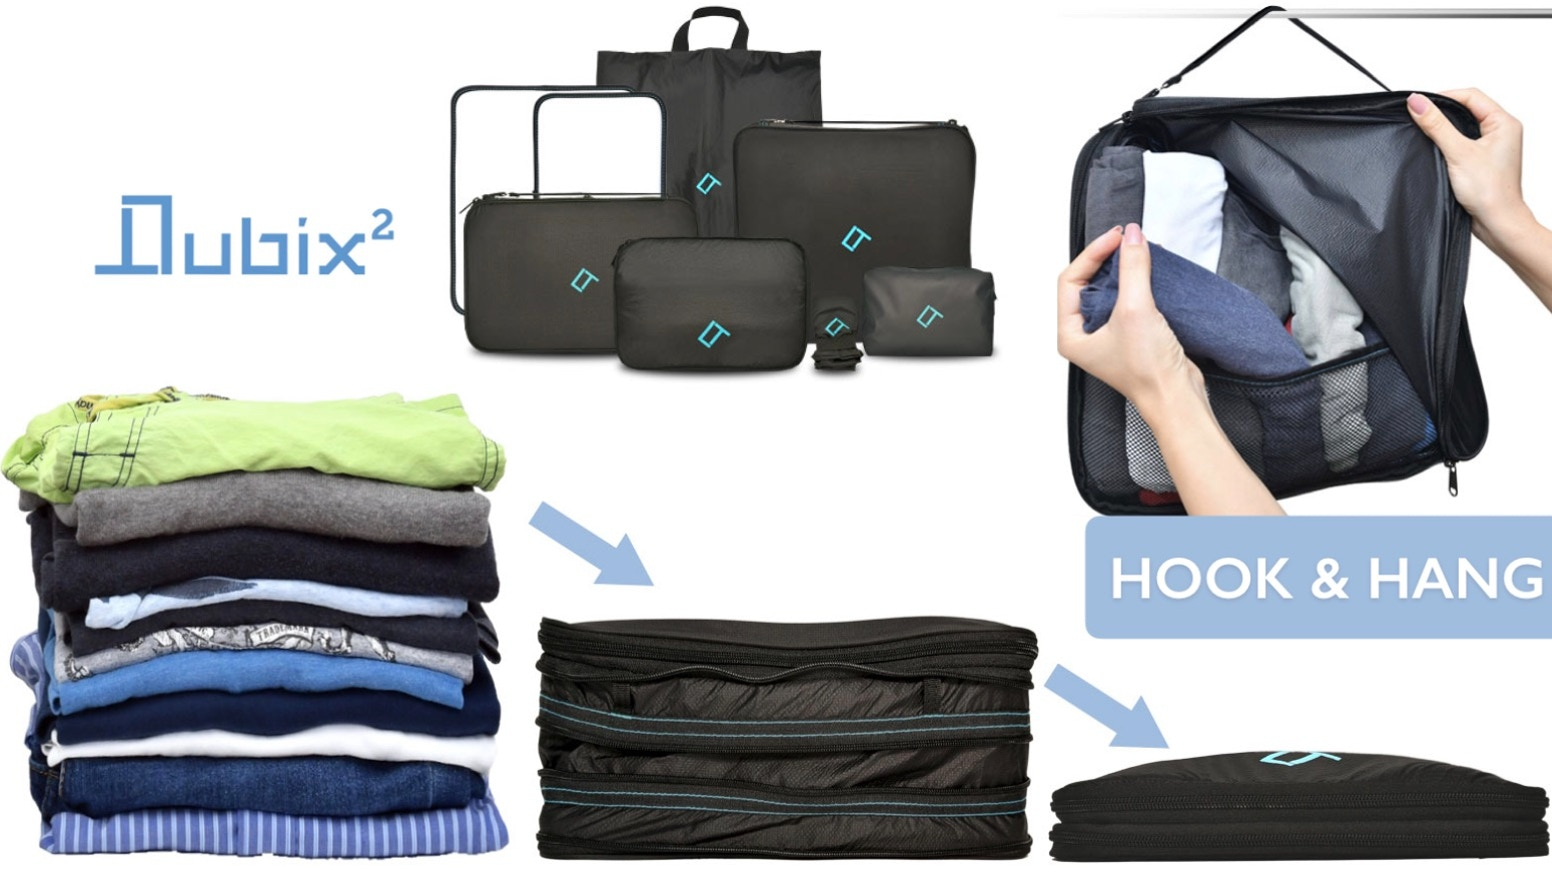 Super Strong Double Compression Packing Cubes That Hang | Save 66% Luggage Space | Light Weight | Water Resistant | Built To Last